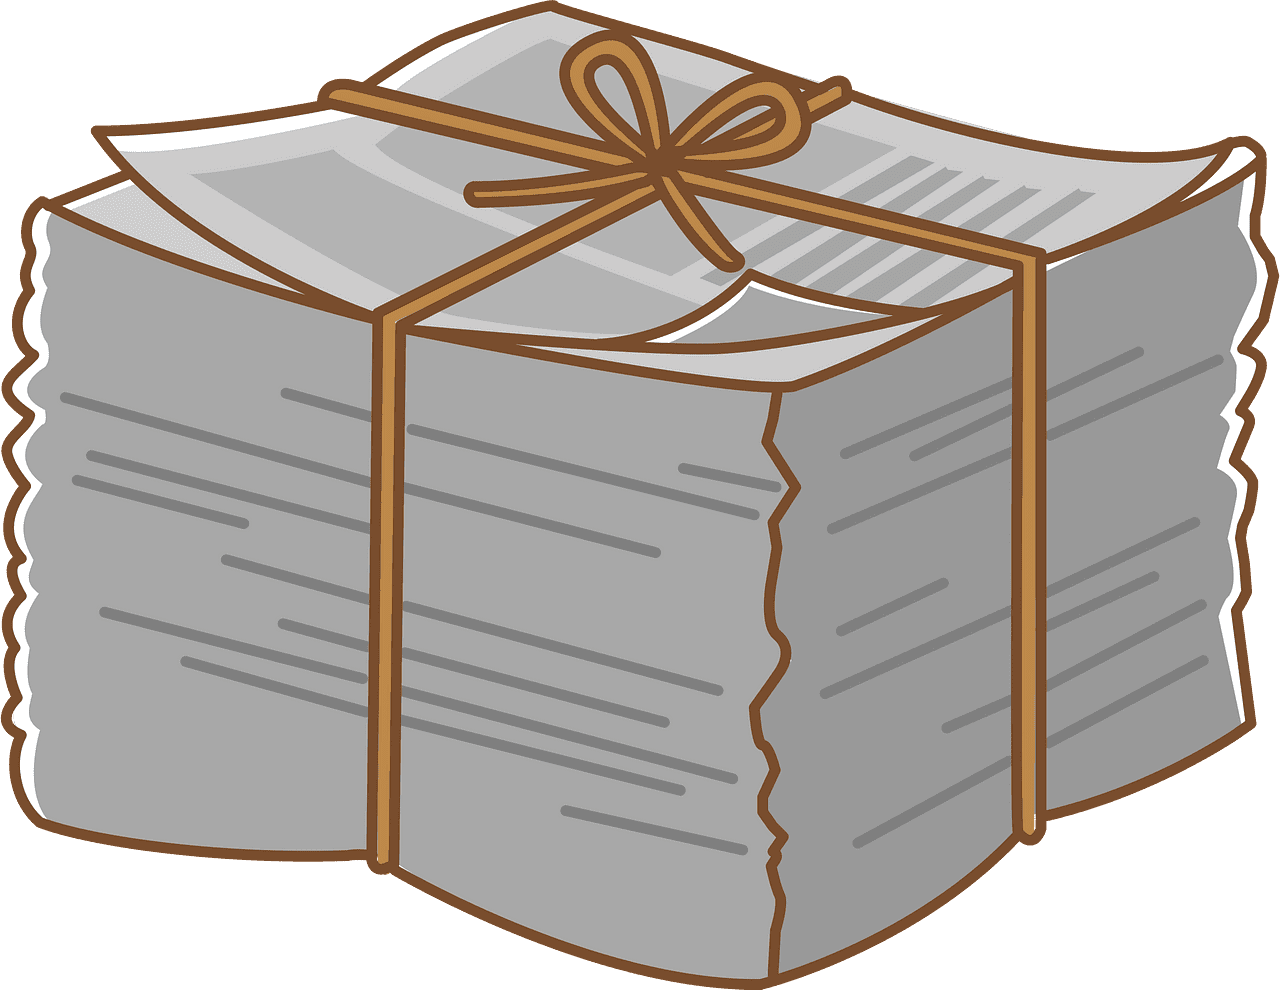 Newspapers clipart transparent